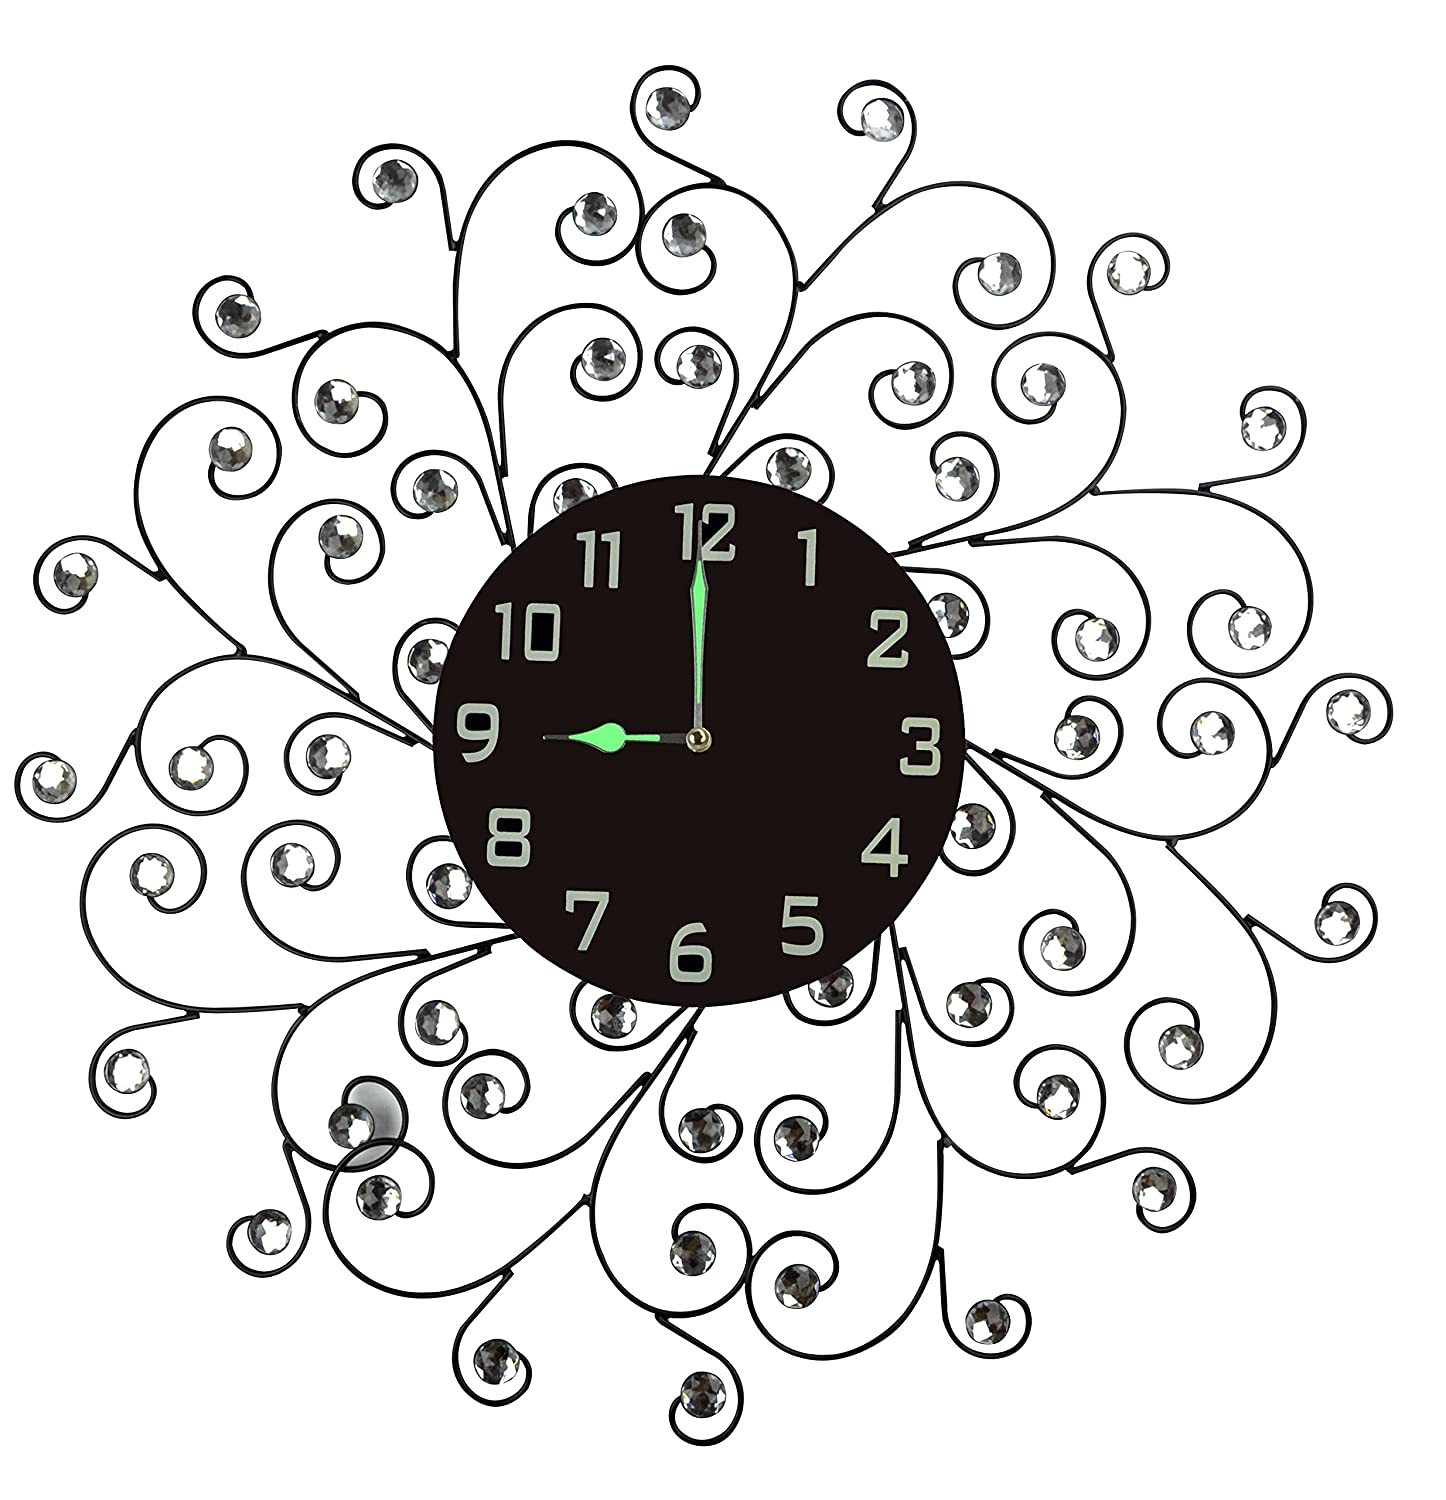 """Lulu Decor, Creeper Metal Wall Clock 25"""", 9.5"""" Black Glass Dial with Arabic Numbers, Decorative Night Dial Clock for Living Room, Bedroom, Office Space"""